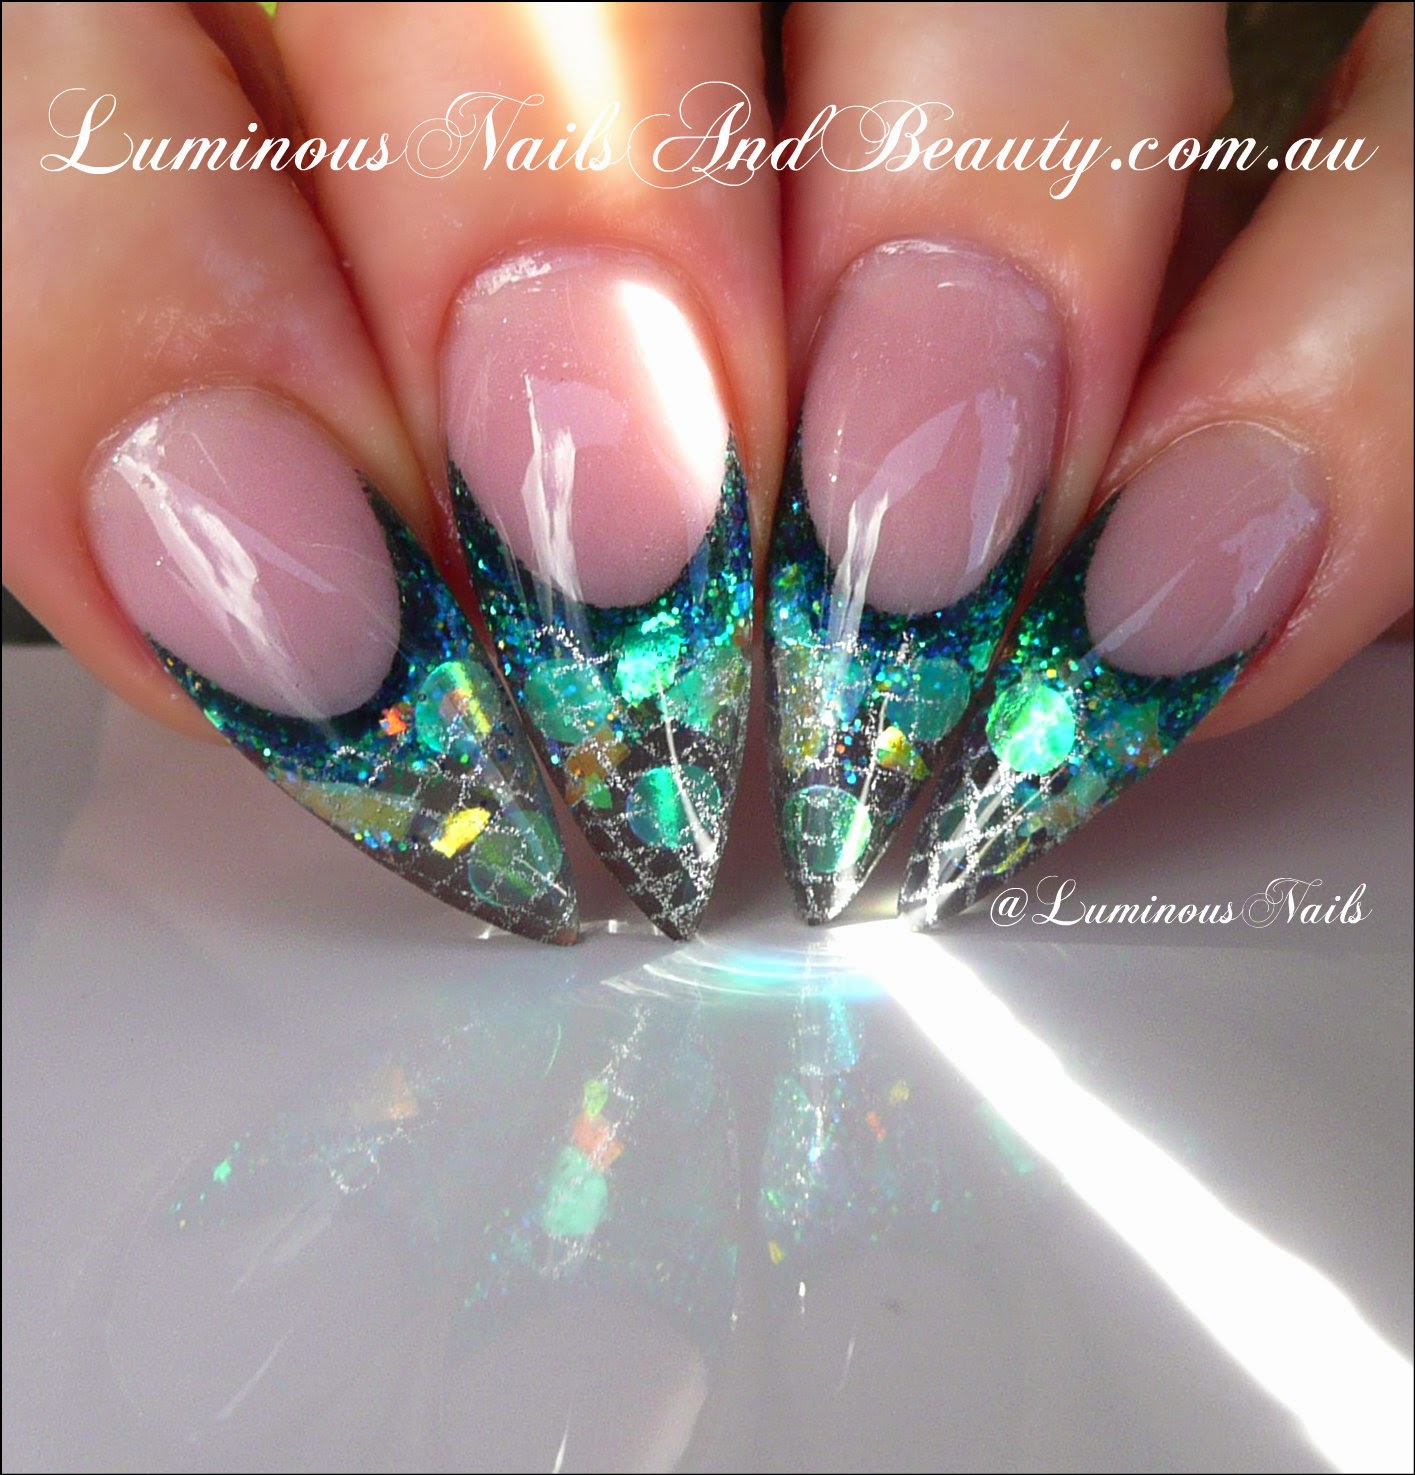 Luminous Nails Mermaids Tale Nails Inspired By Greg Salo From